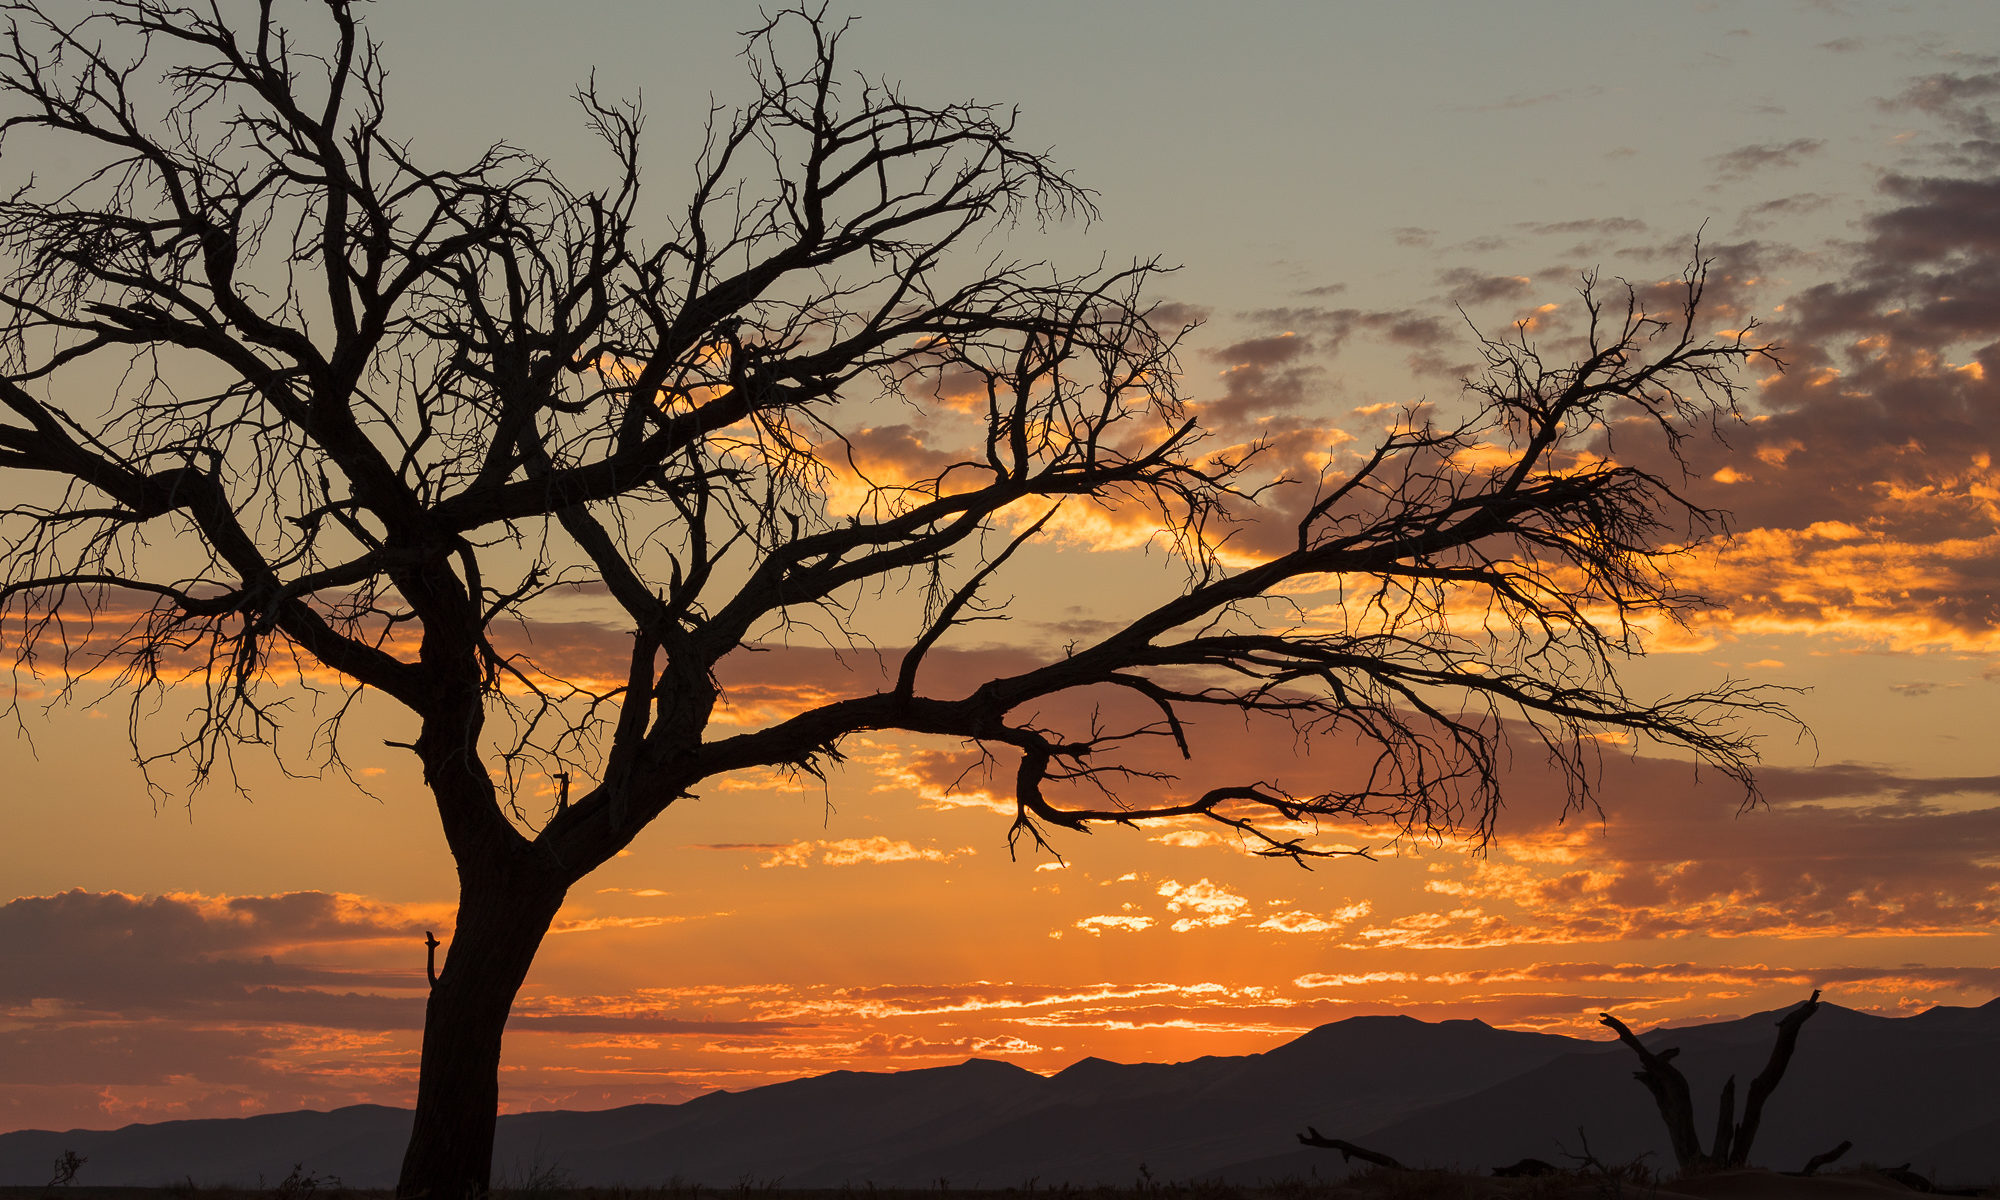 A desert tree silhouettes against a sunset sky, Namib-Naukluft National Park, Namibia.